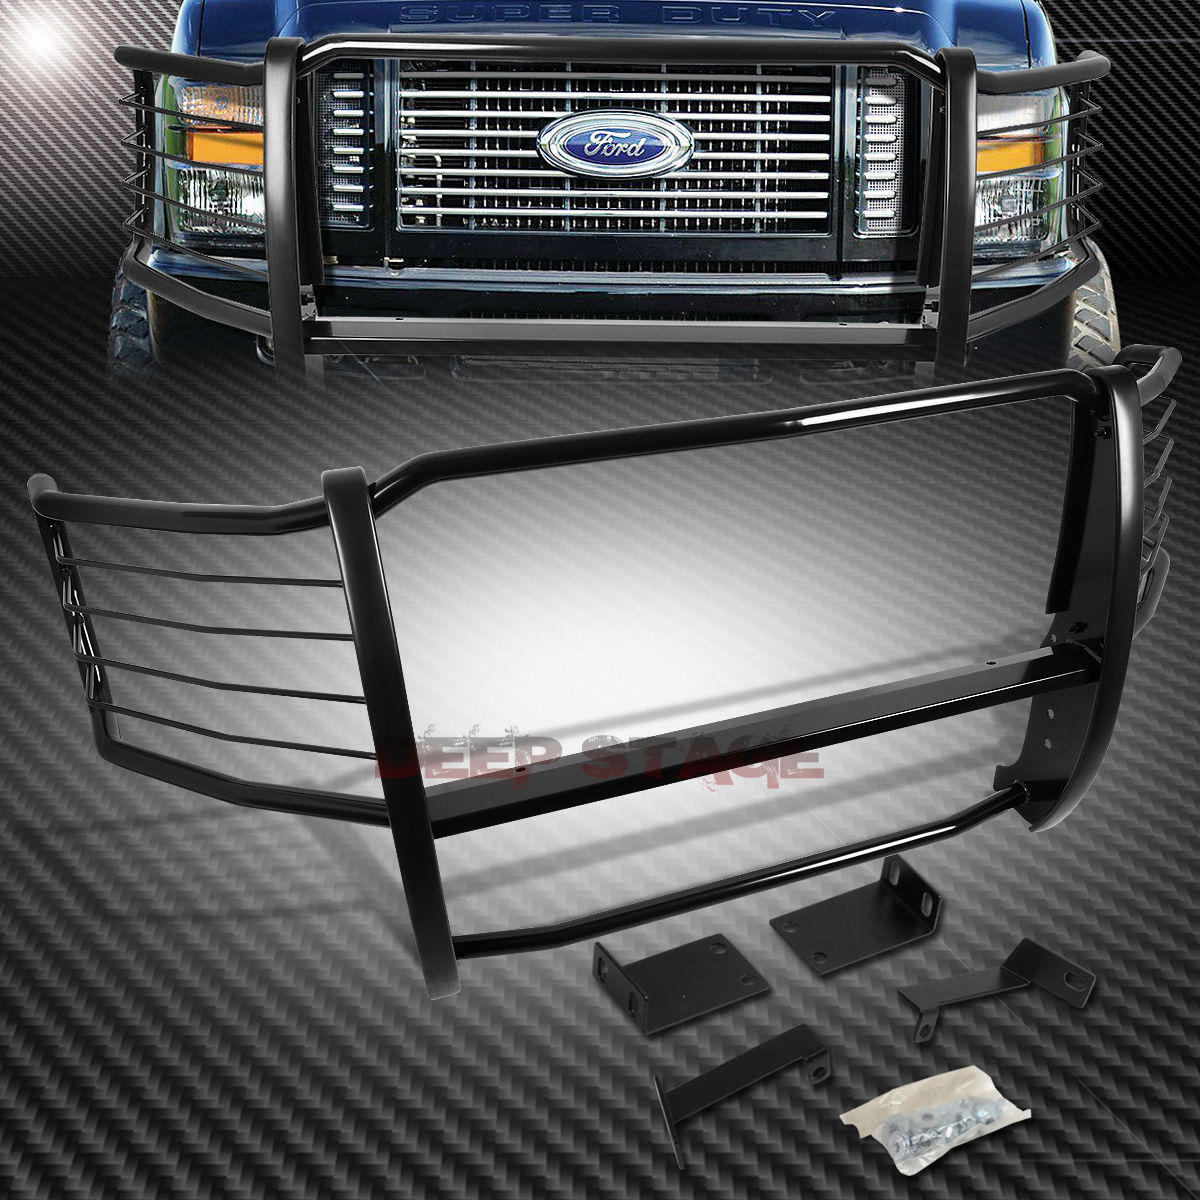 グリル カーボンスチールフロントバンパーブラシグリルガード08-10 F250-F550 SD SUPERDUTY CARBON STEEL FRONT BUMPER BRUSH GRILLE GUARD FOR 08-10 F250-F550 SD SUPERDUTY